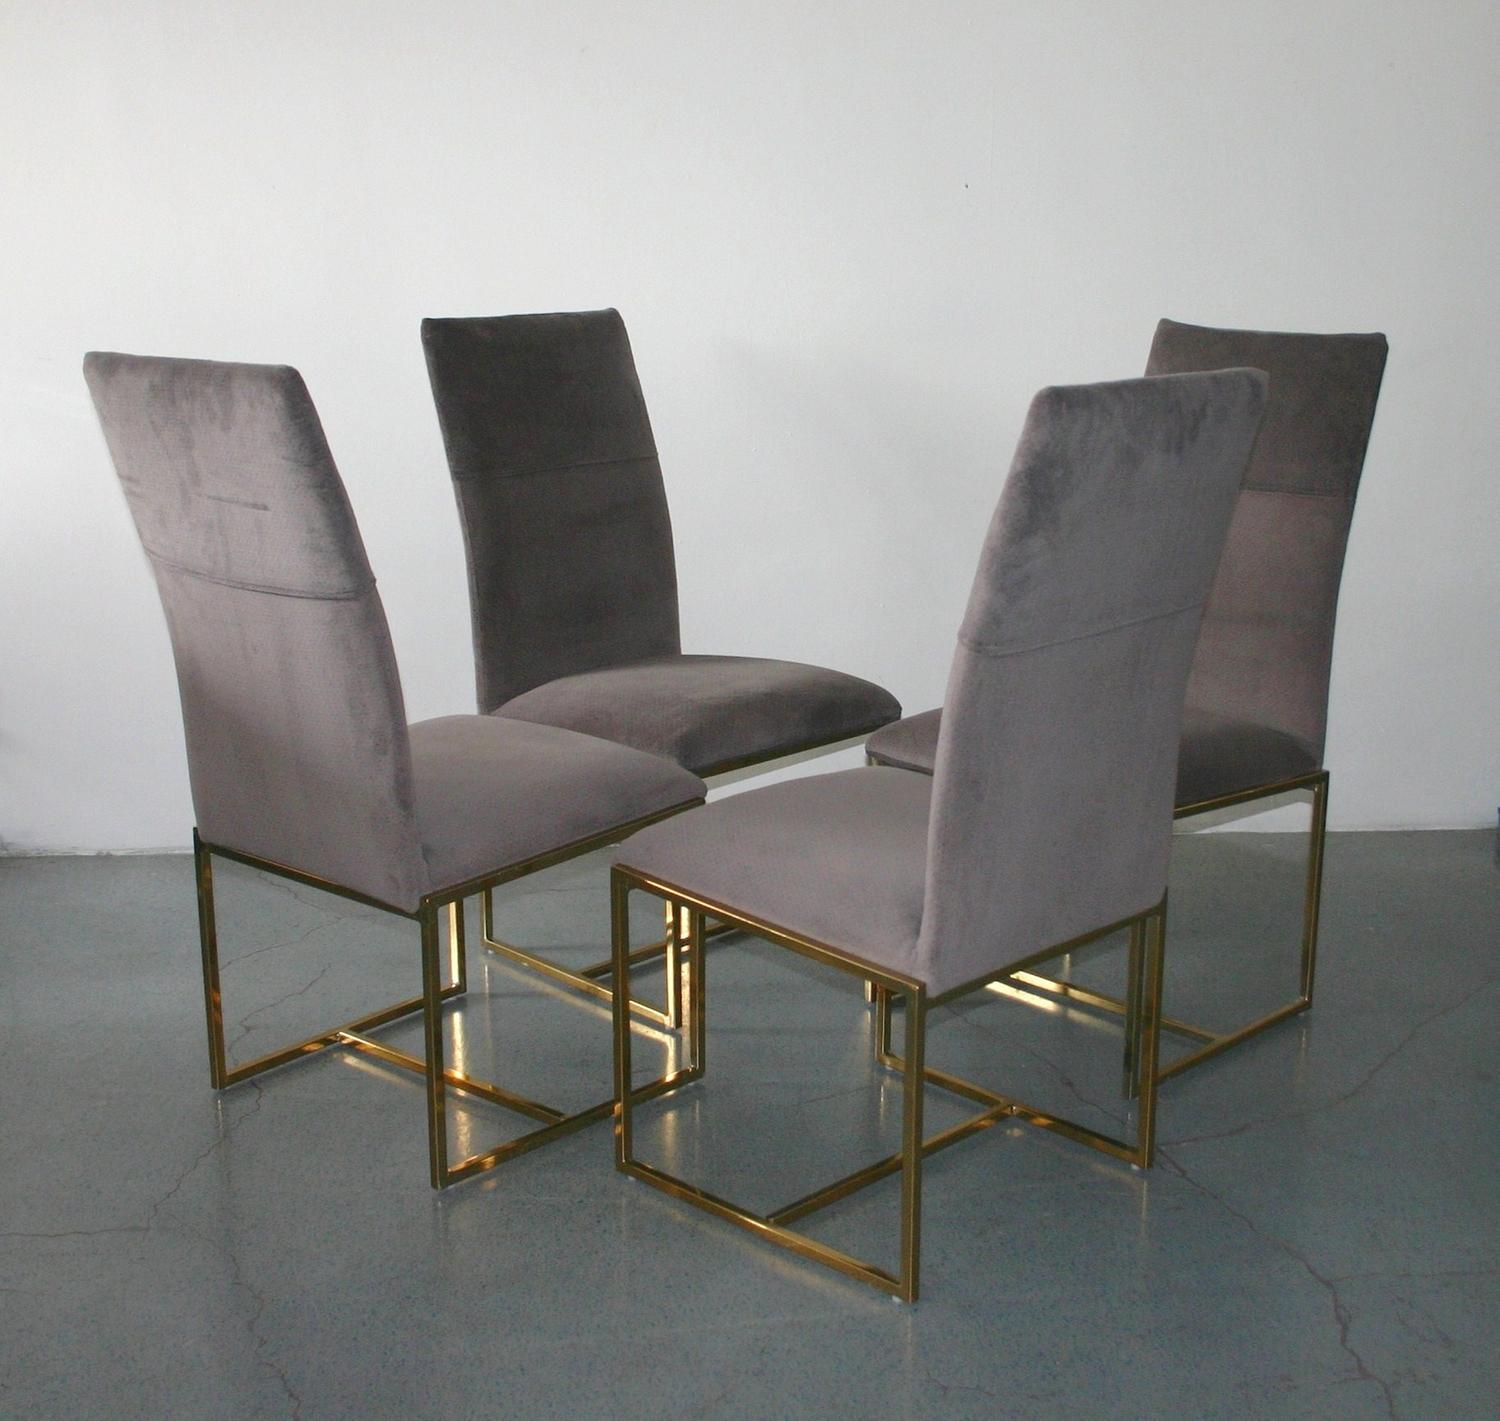 Milo Baughman Chairs Milo Baughman Dining Chairs Set Of 6 C 1950